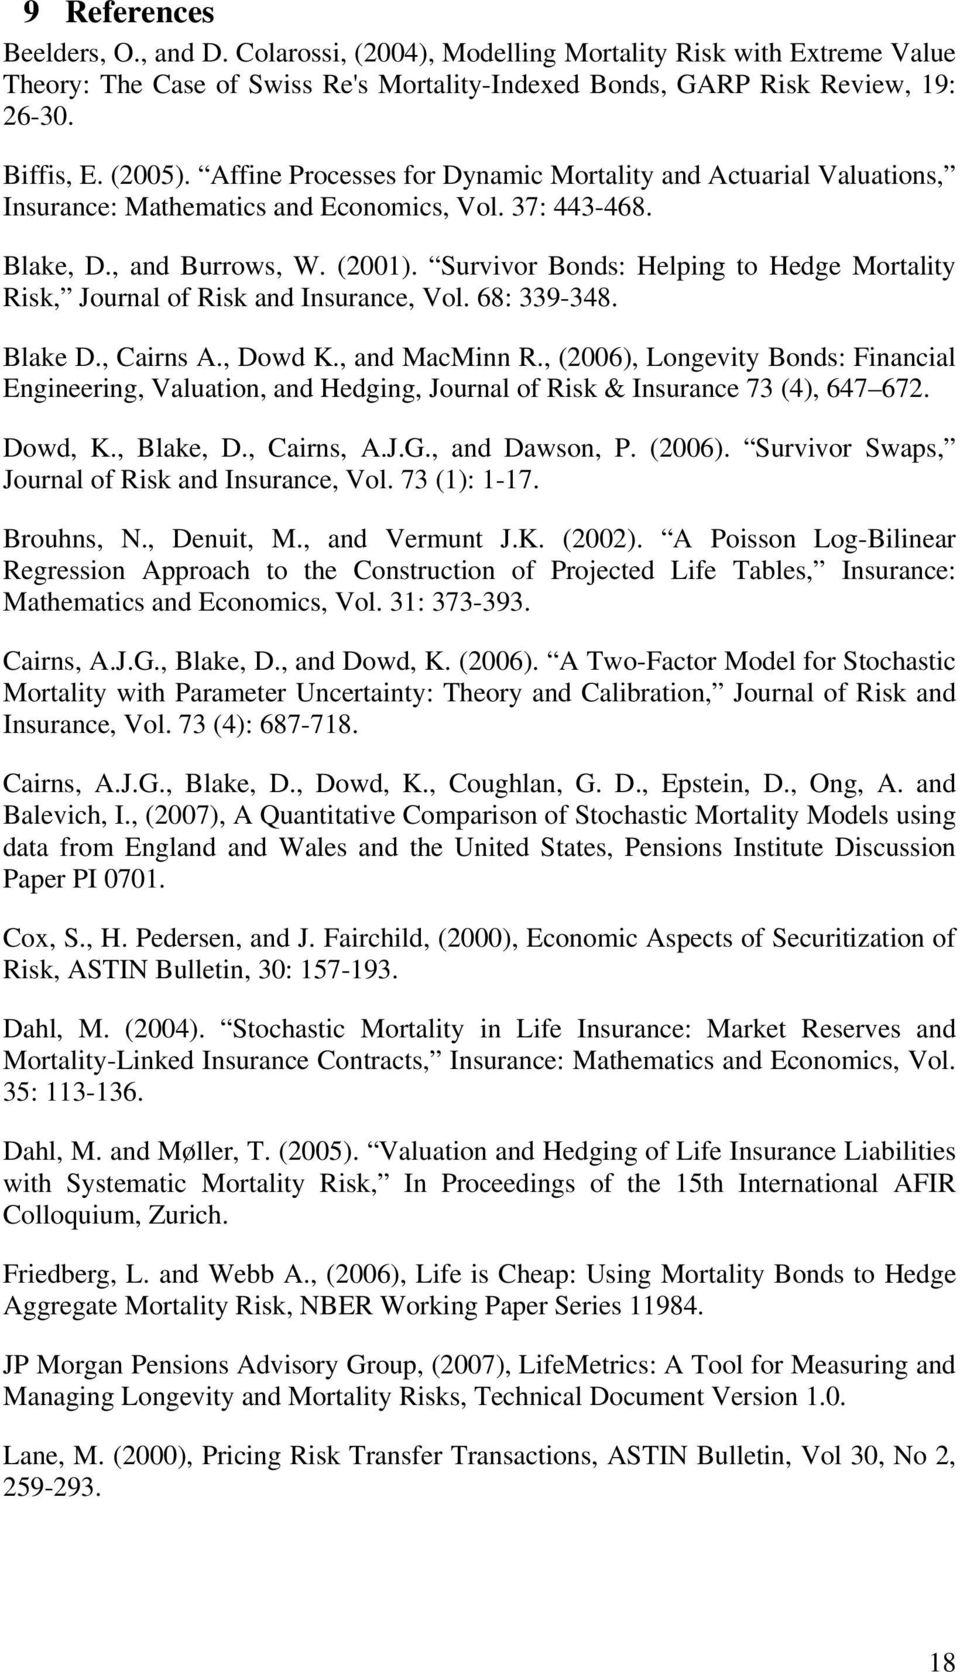 Survivor Bonds: Helping to Hedge Mortality Risk, Journal of Risk and Insurance, Vol. 68: 339-348. Blake D., Cairns A., Dowd K., and MacMinn R.